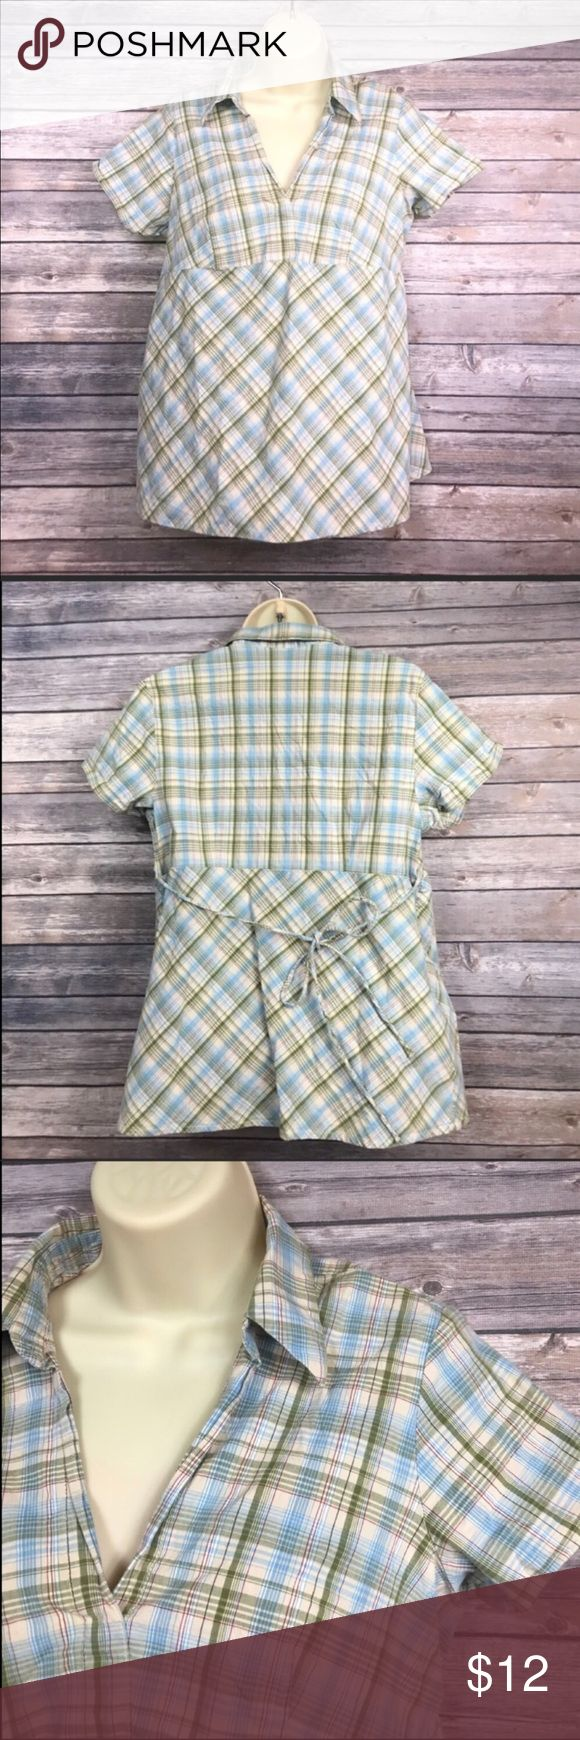 L Motherhood Maternity short sleeve top Cute pattern for spring/summer!  Has tie back and shirt sleeves.  Size Large. Motherhood Maternity Tops